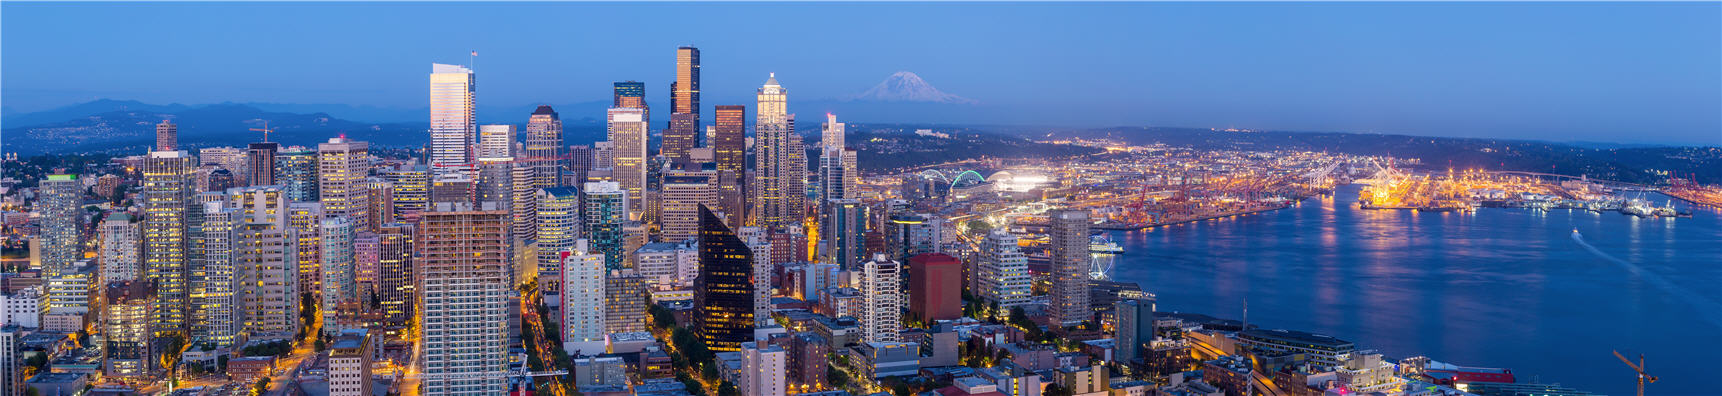 Seattle_Skyline-dusk-wide